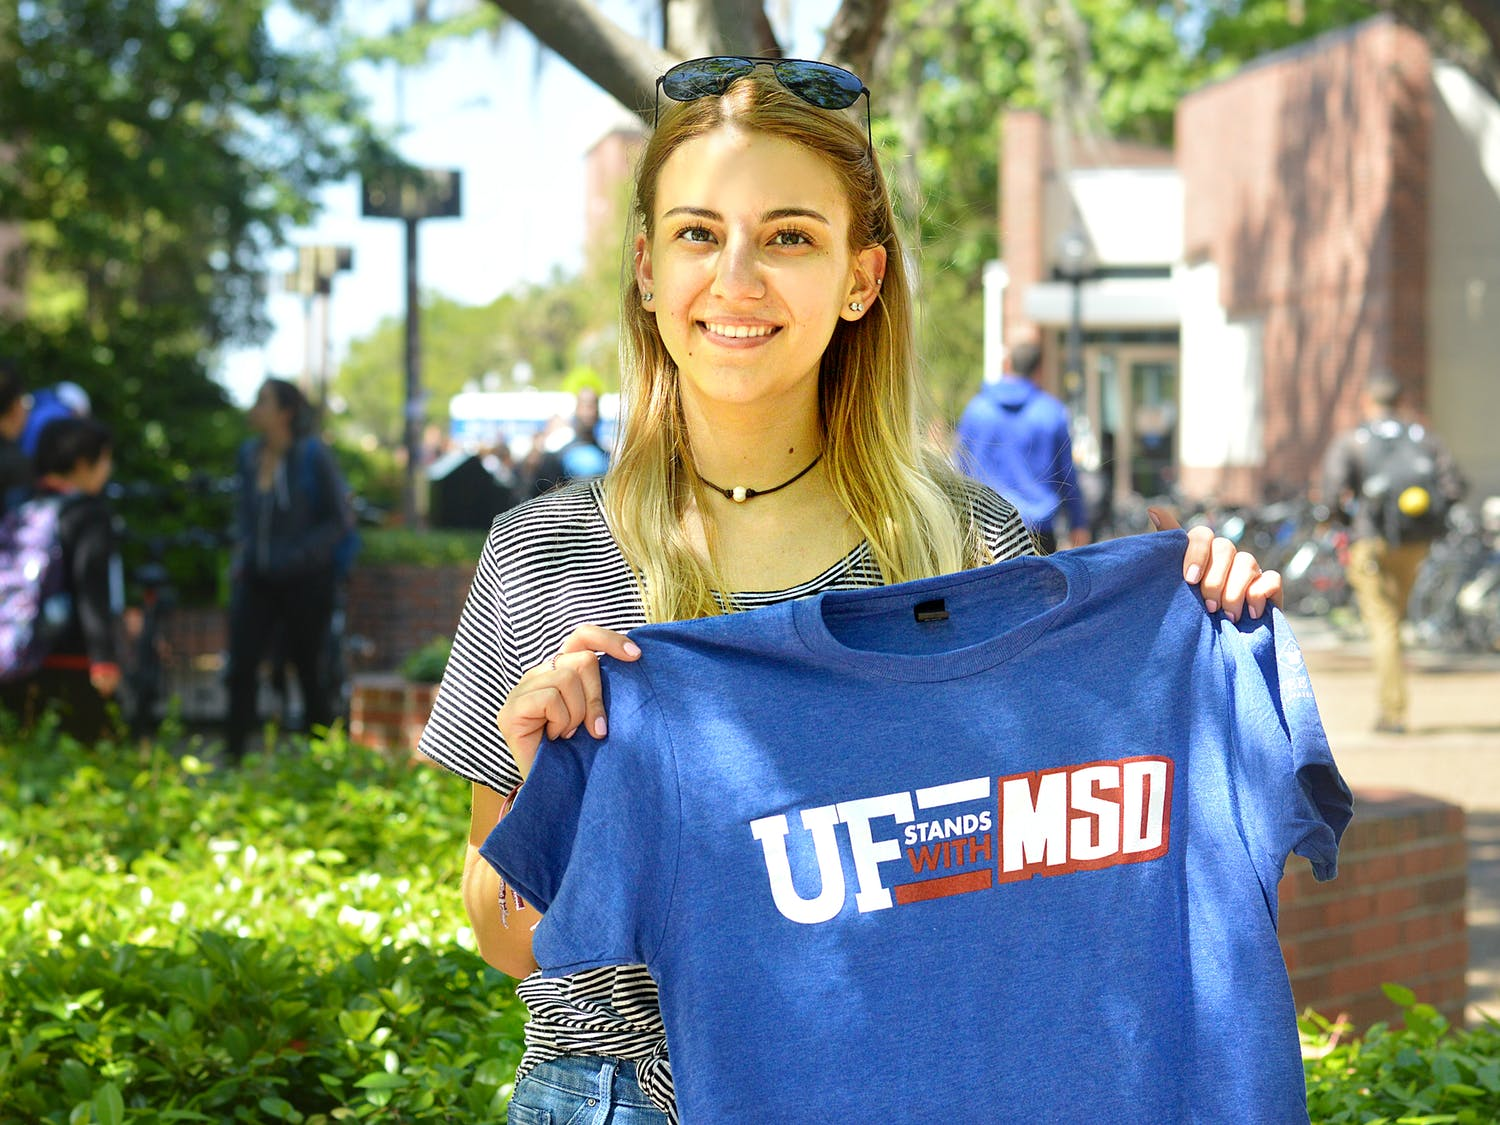 """Julia Tiplea, a 19-year-old marine science sophomore, hands out """"UF stands with MSD"""" T-shirts to fundraise for her group's trip to Washington for the national """"March for Our Lives"""" event Saturday."""